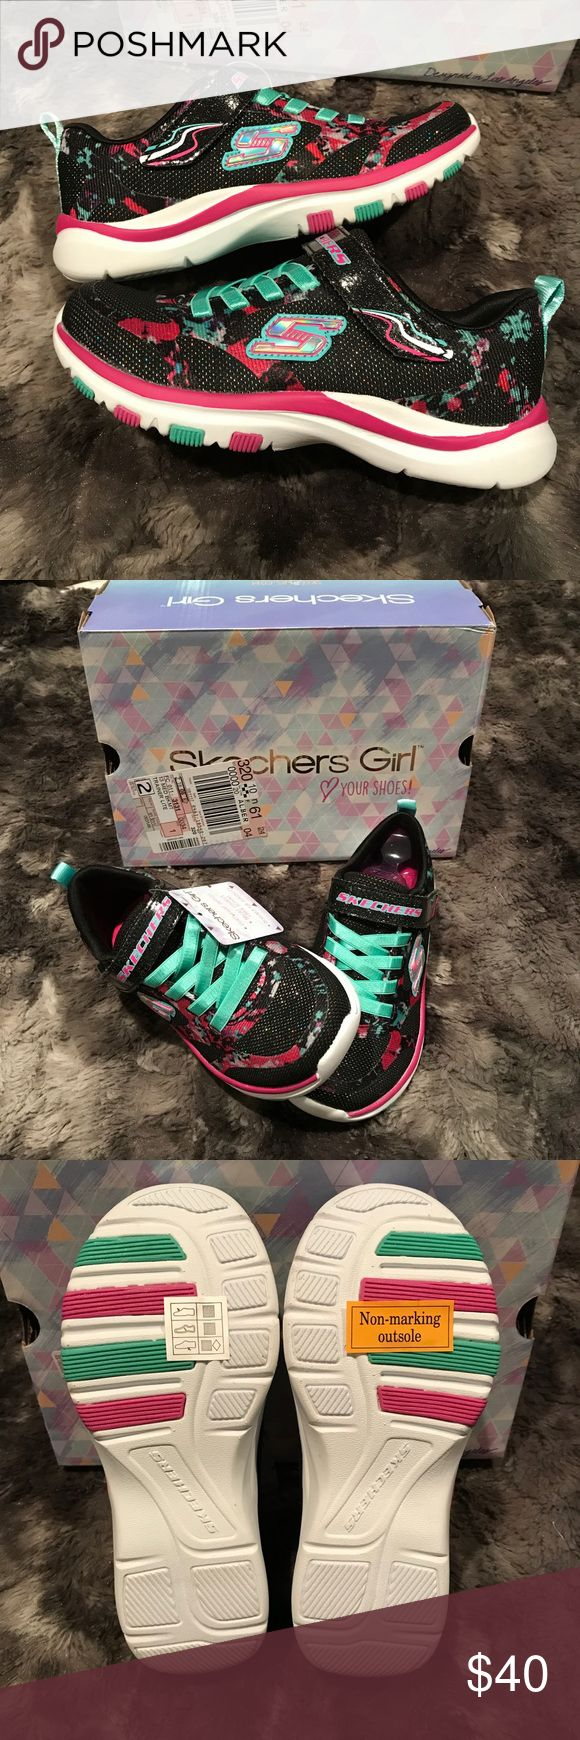 Girls size 13 Skechers sneakers black pink floral Girls size 13 Skechers athletic shoes. They are brand new. They are black, pink and teal with a floral print. Super cute shoes for back to school! Skechers Shoes Sneakers